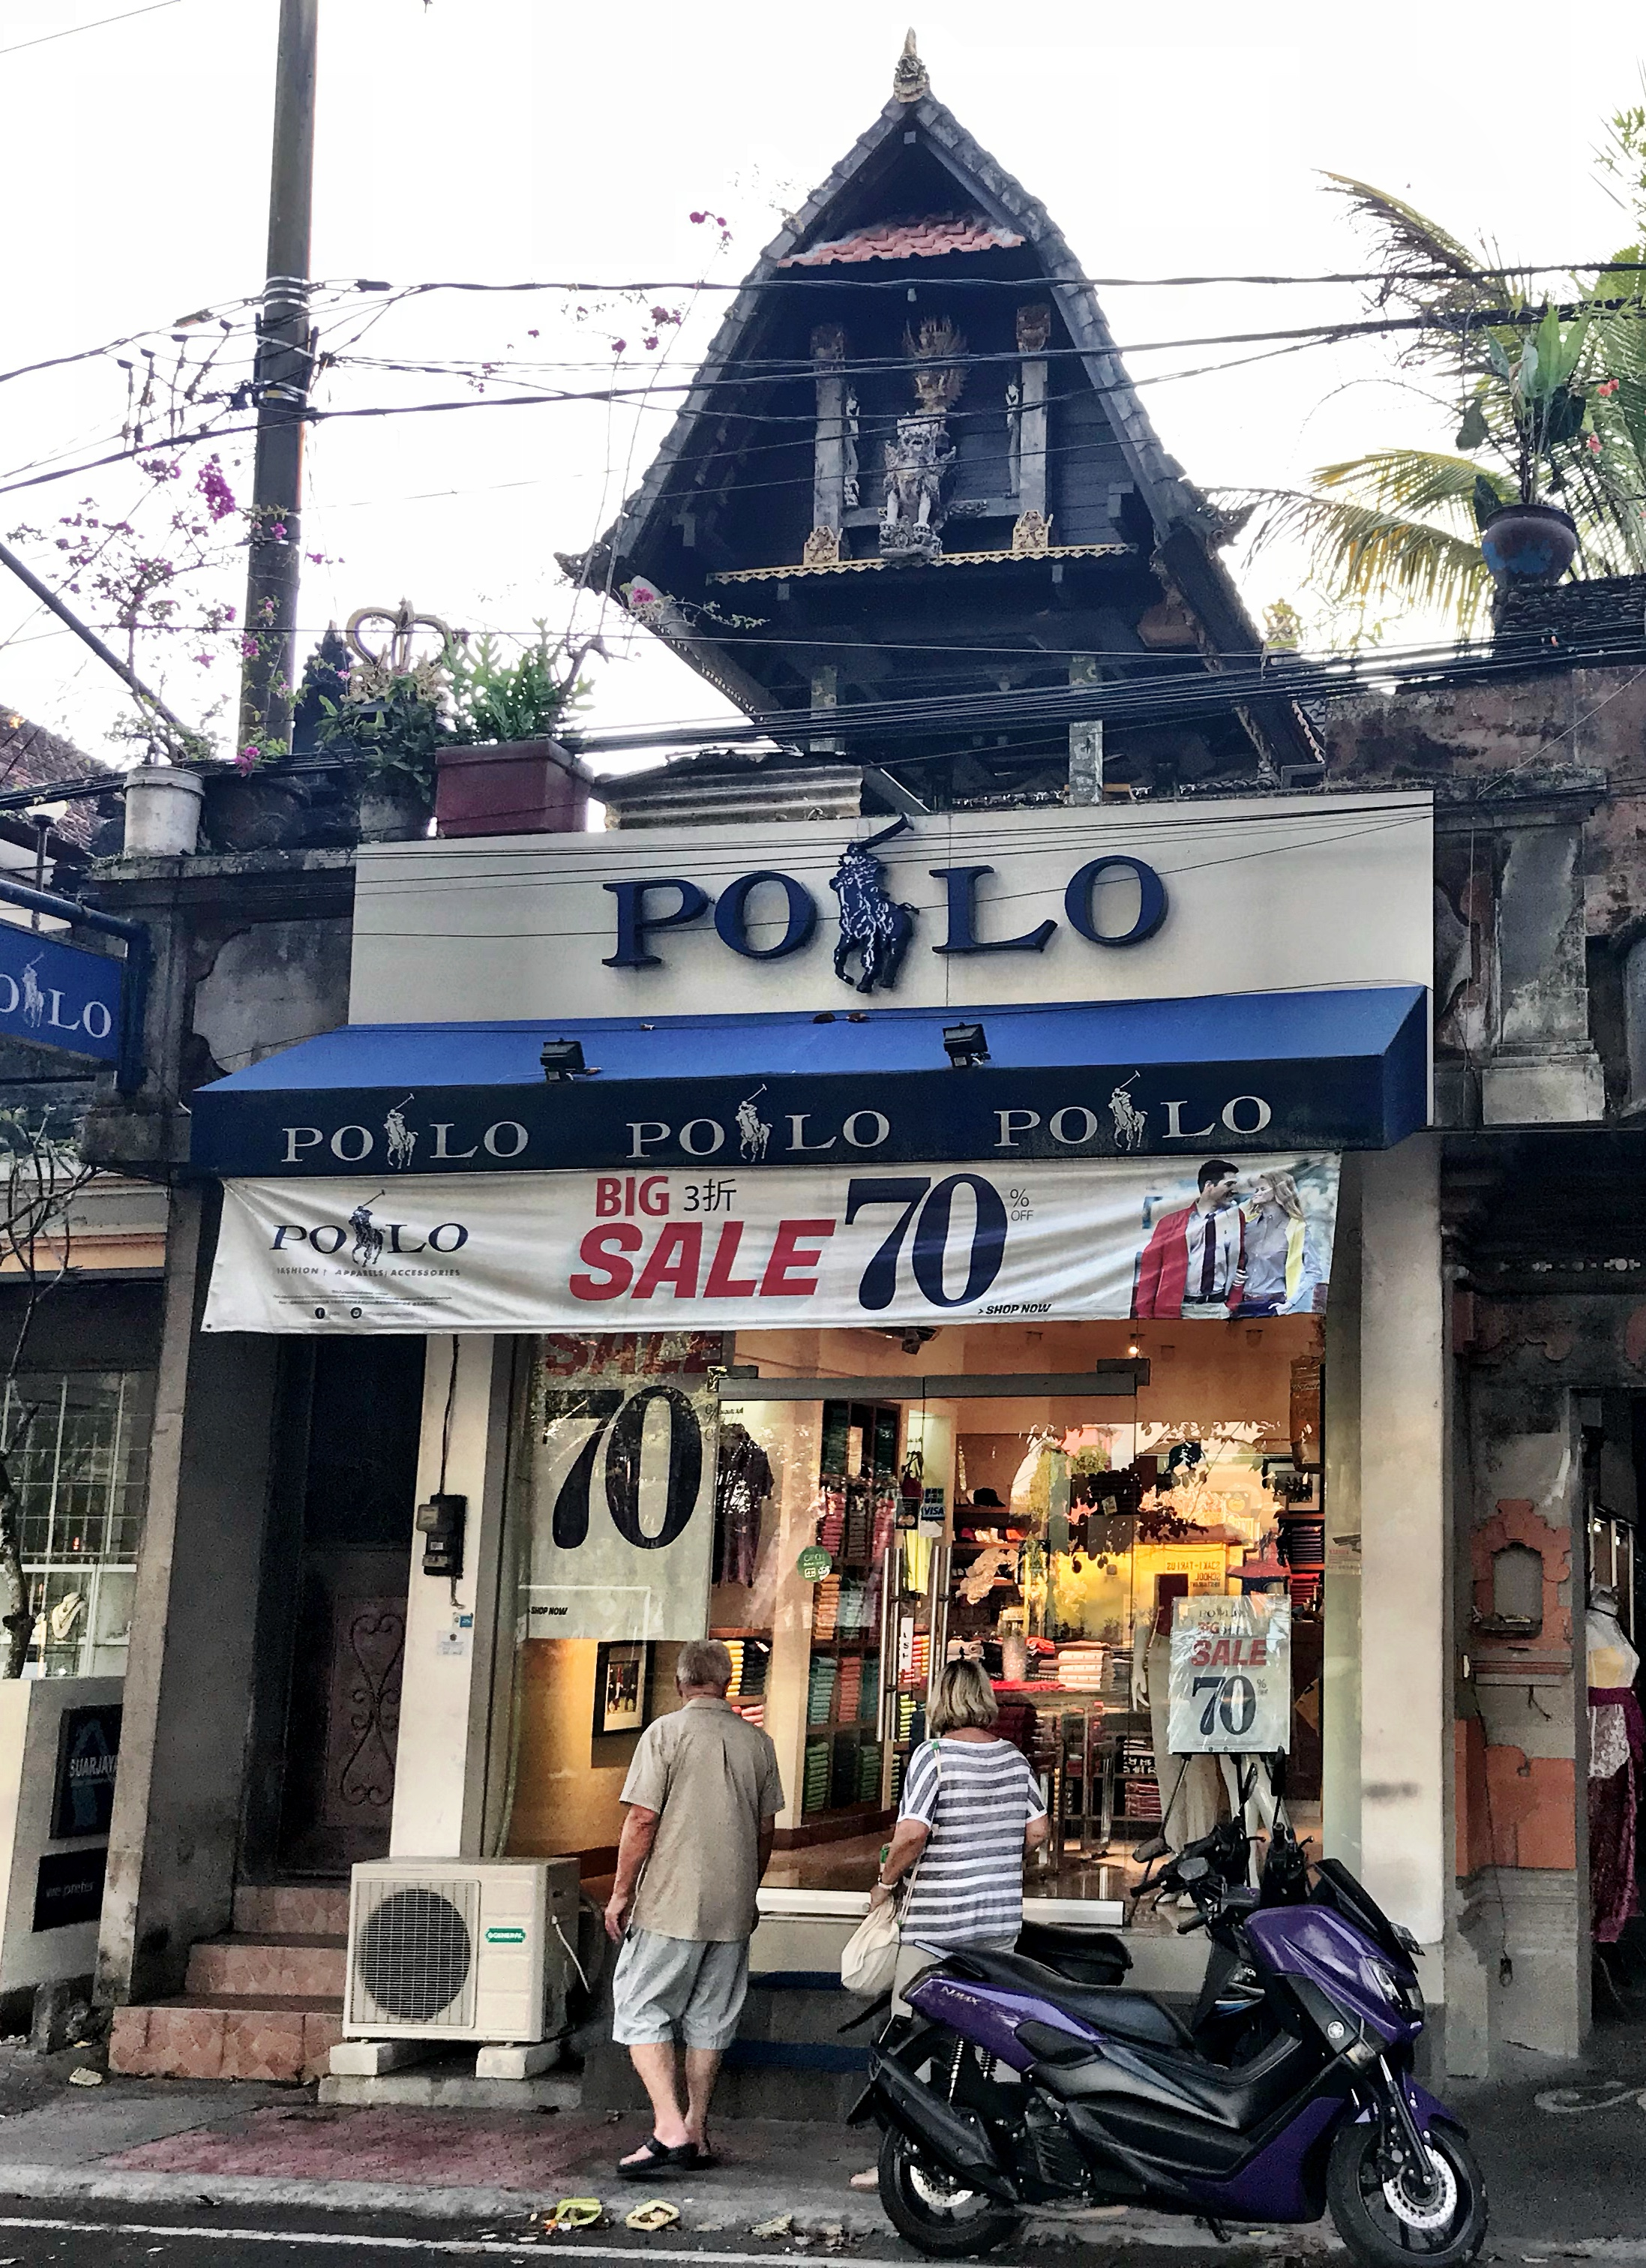 We passed at least four Polo stores in Ubud — and they all seemed to be having a 70% off sale